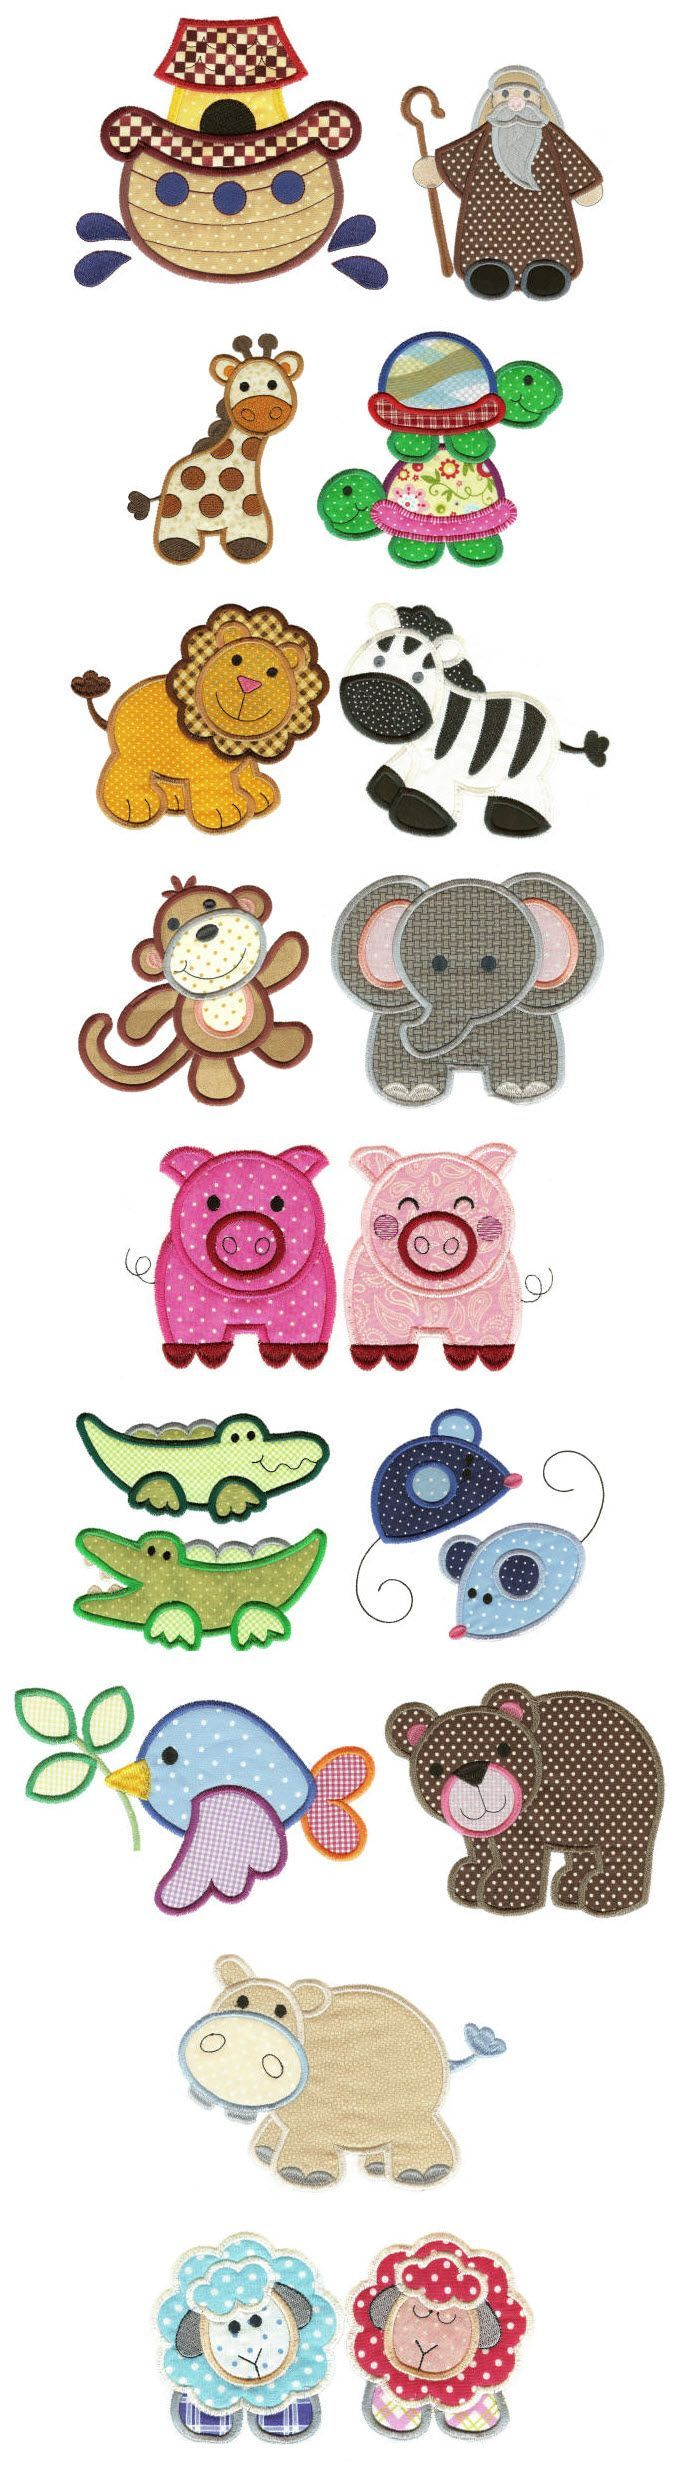 Embroidery | Free Machine Embroidery Designs | Noah and Friends Applique